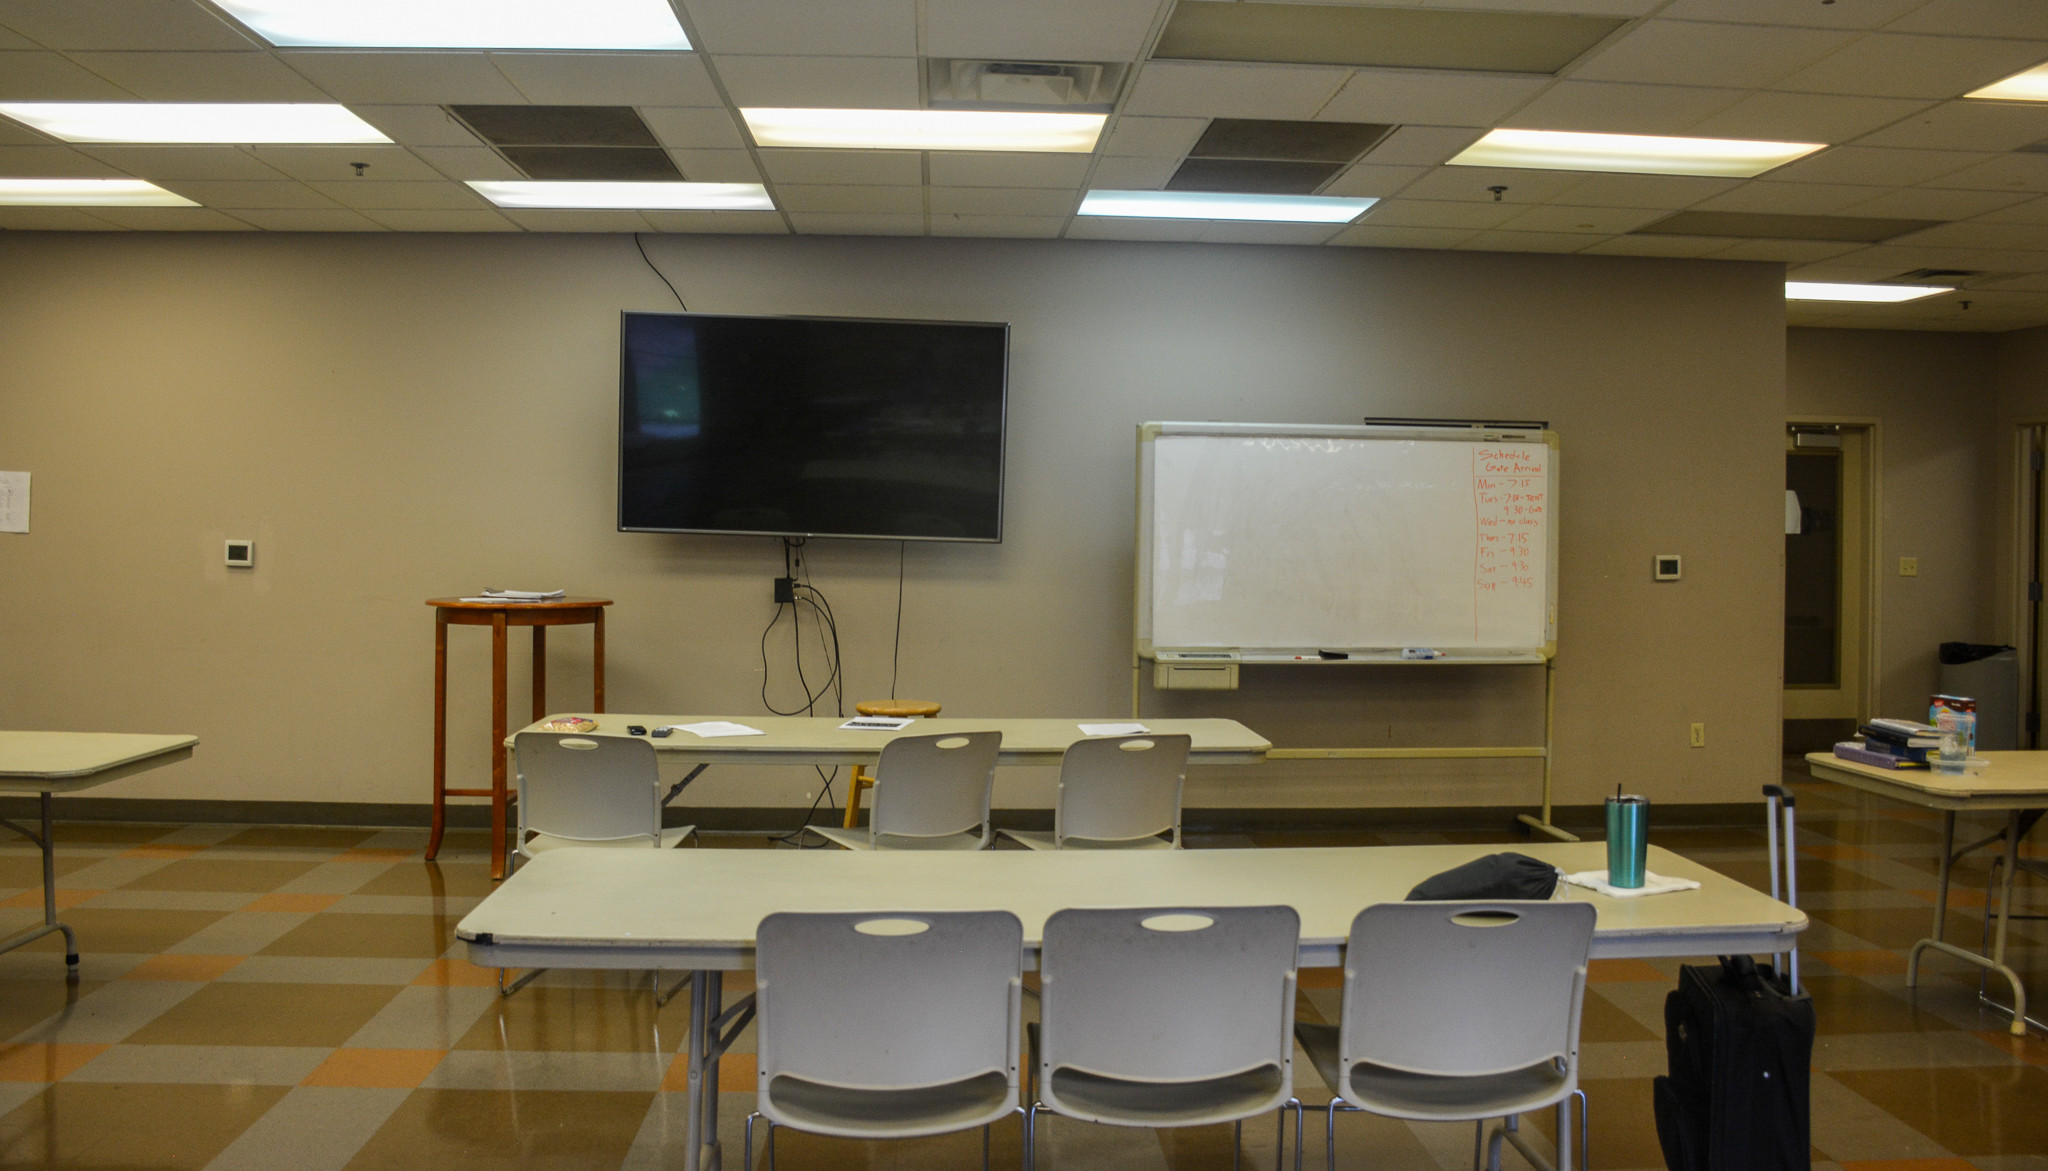 Cafeteria/meeting room